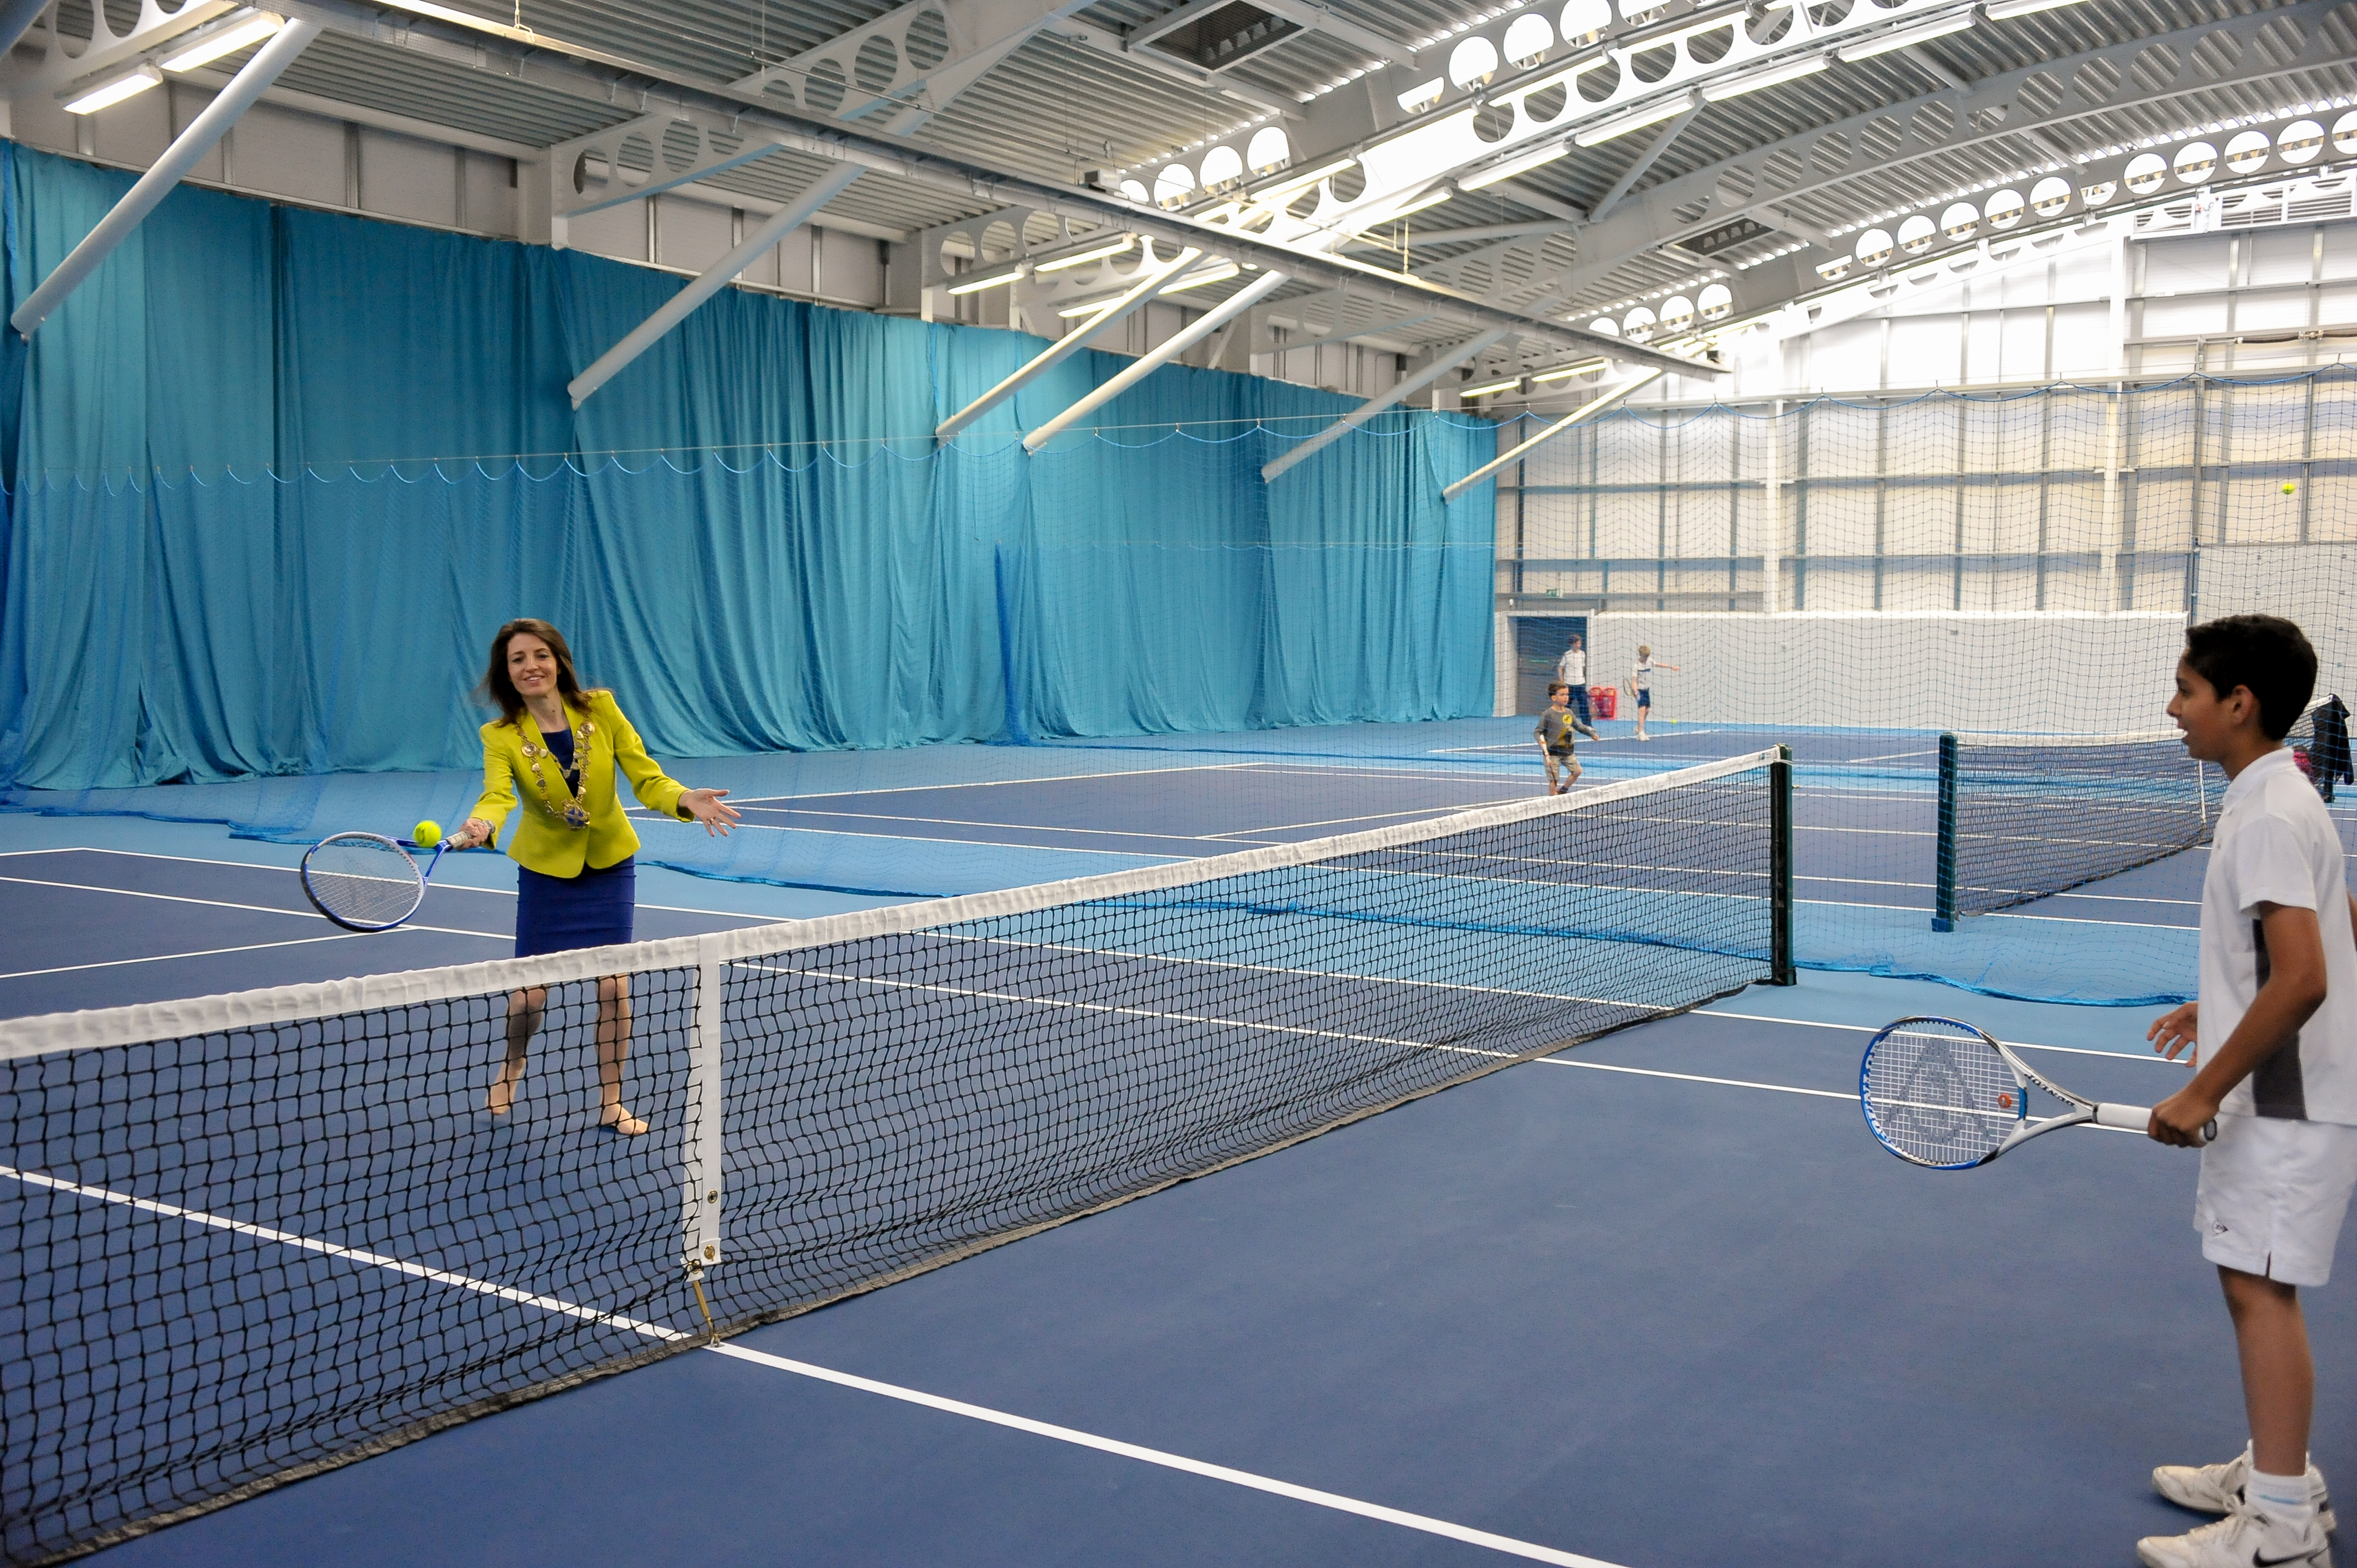 There is a £5 cost for the tennis event with all the proceeds going directly to Rally for Bally